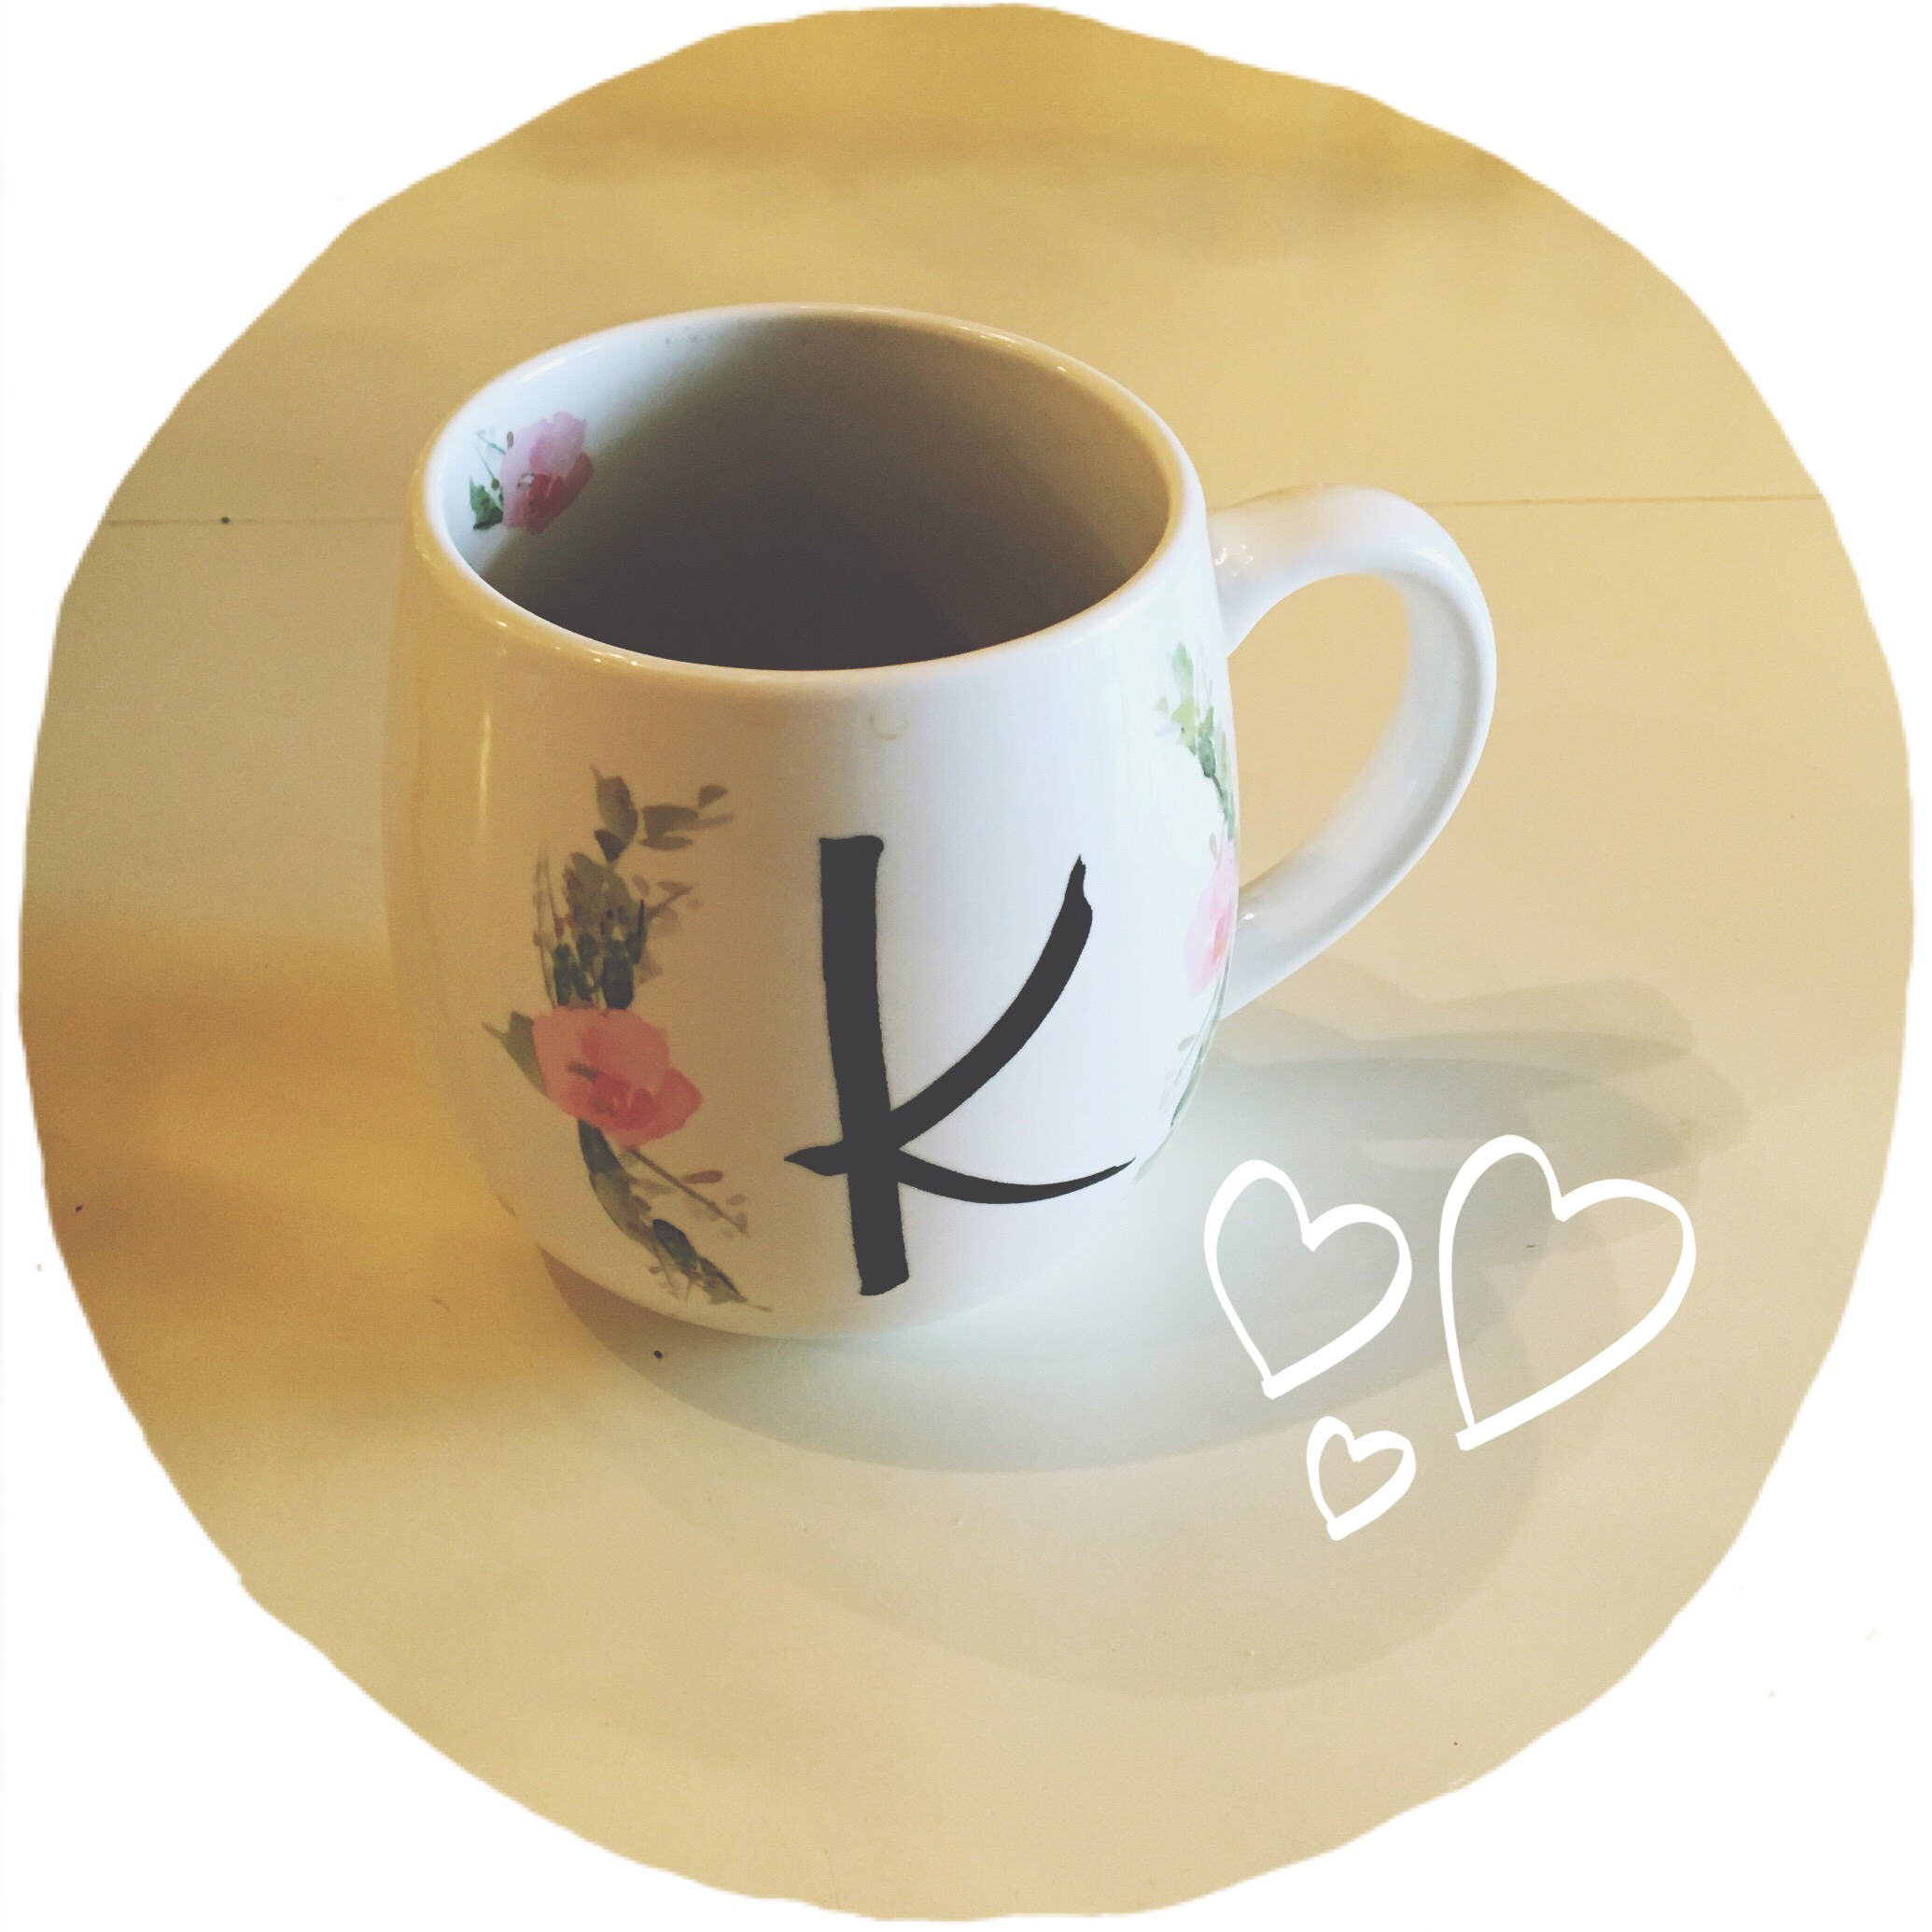 ... A Cup Of Kindness